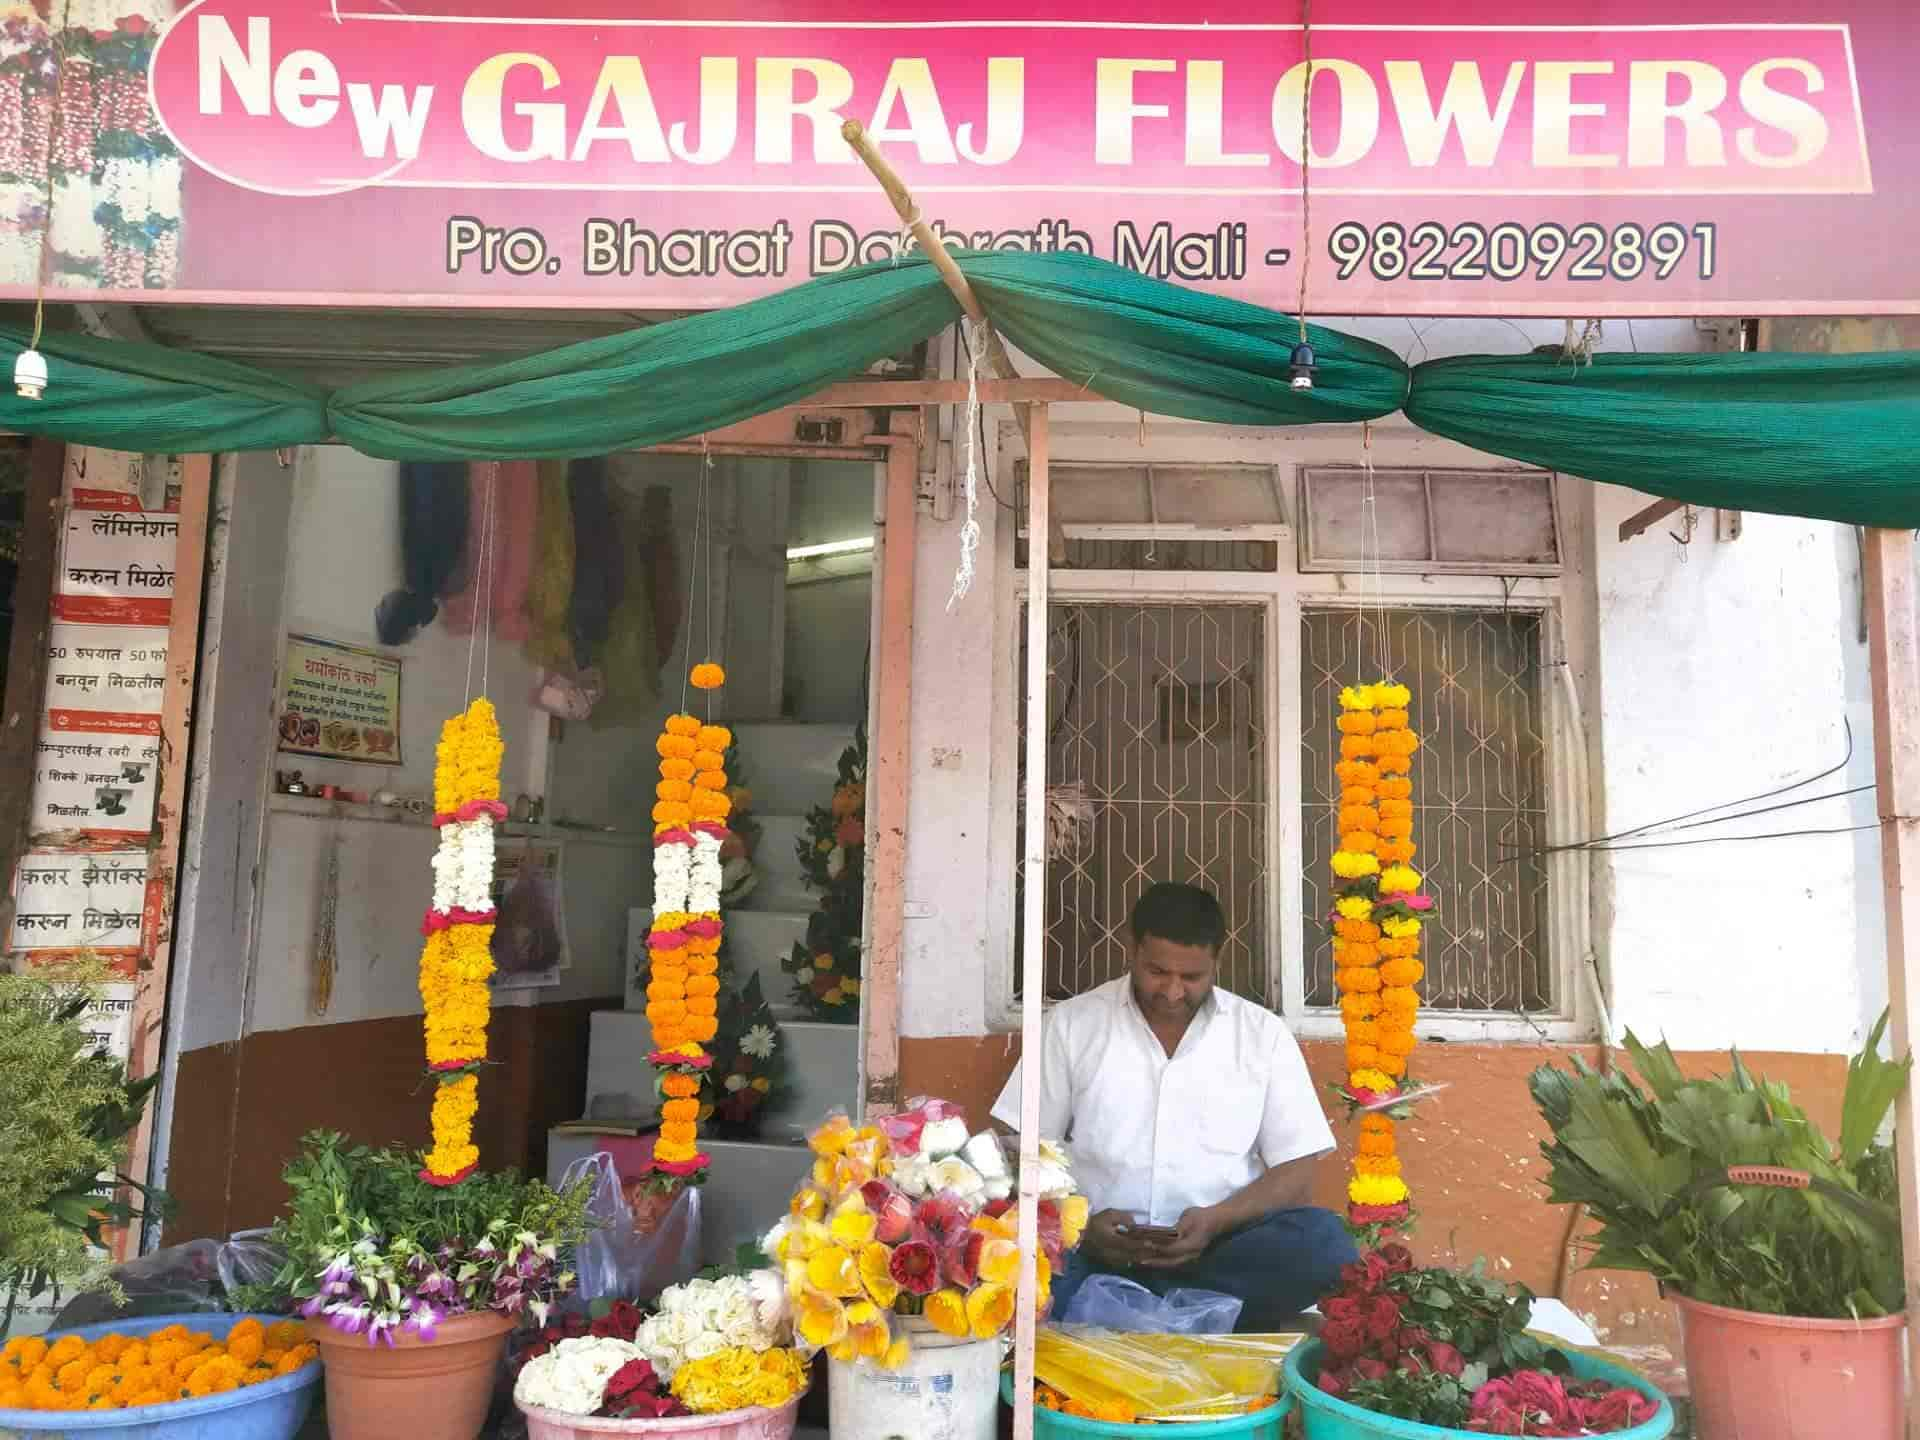 Gajraaj Flower Shop Nandurbar Flower Shops In Nandurbar